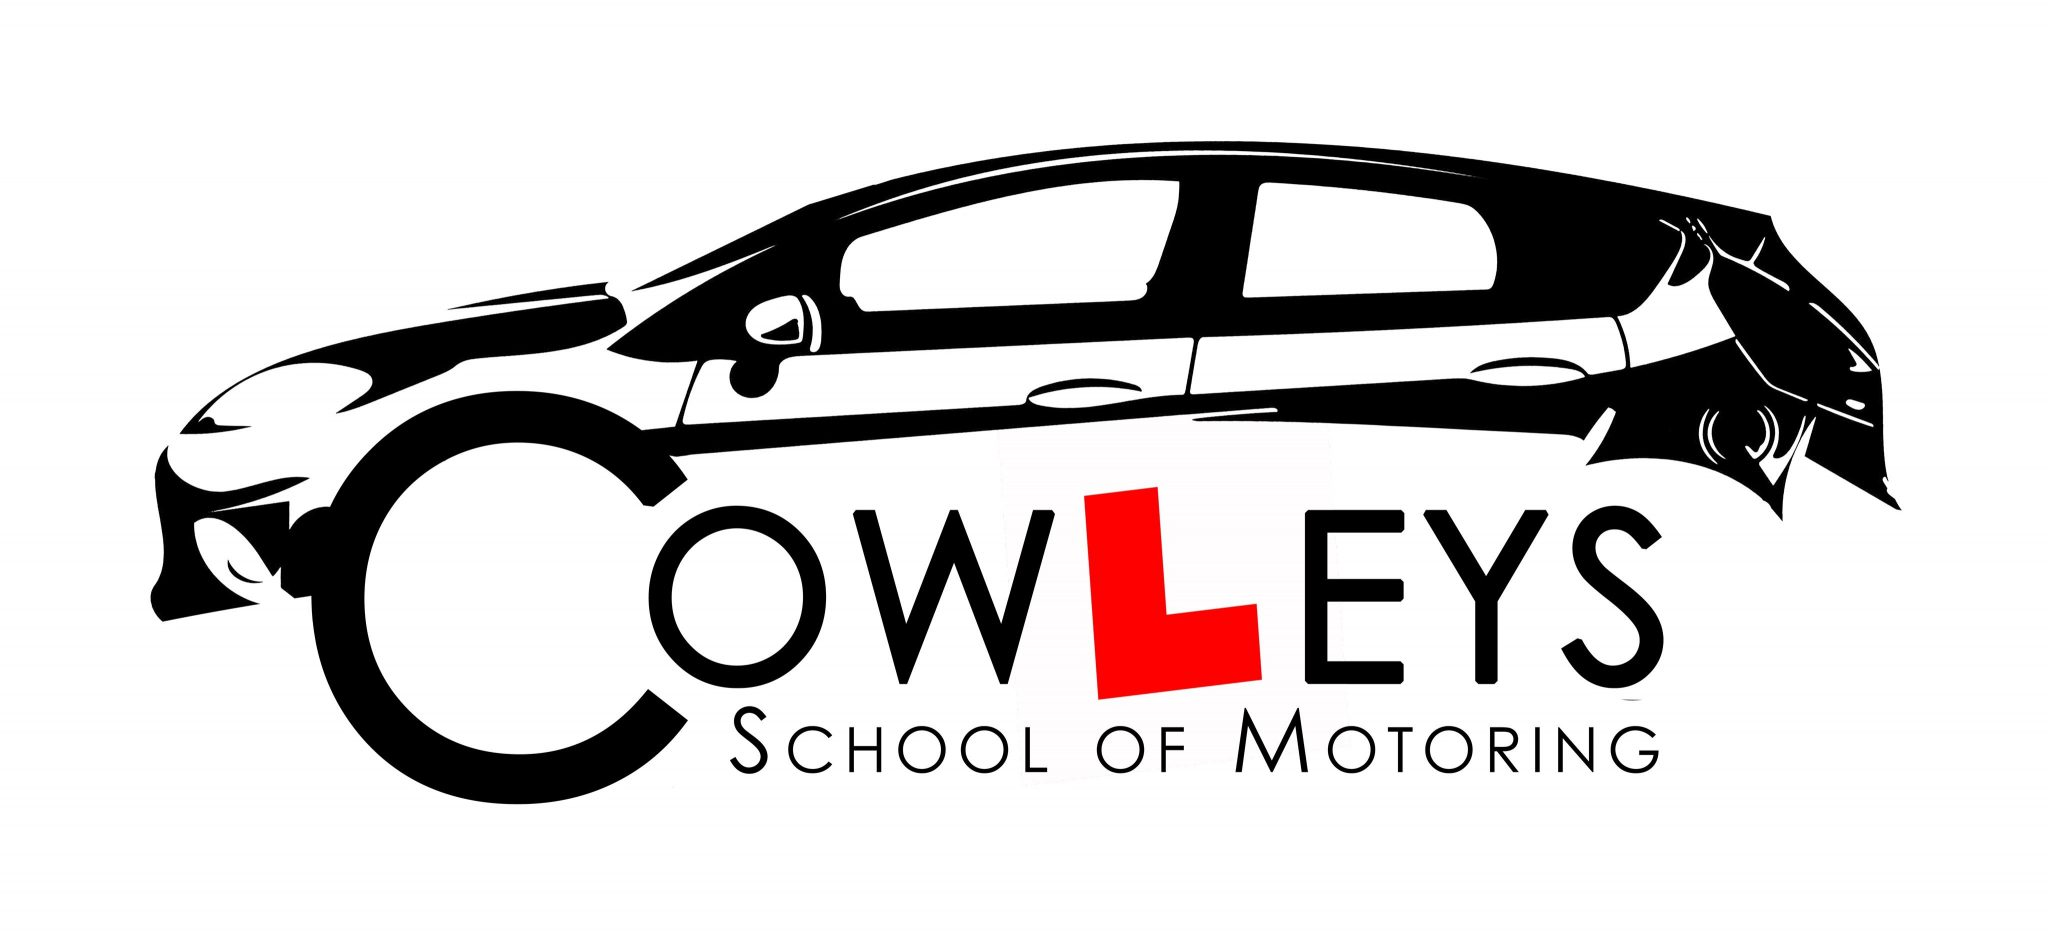 Cowley's School of Motoring logo